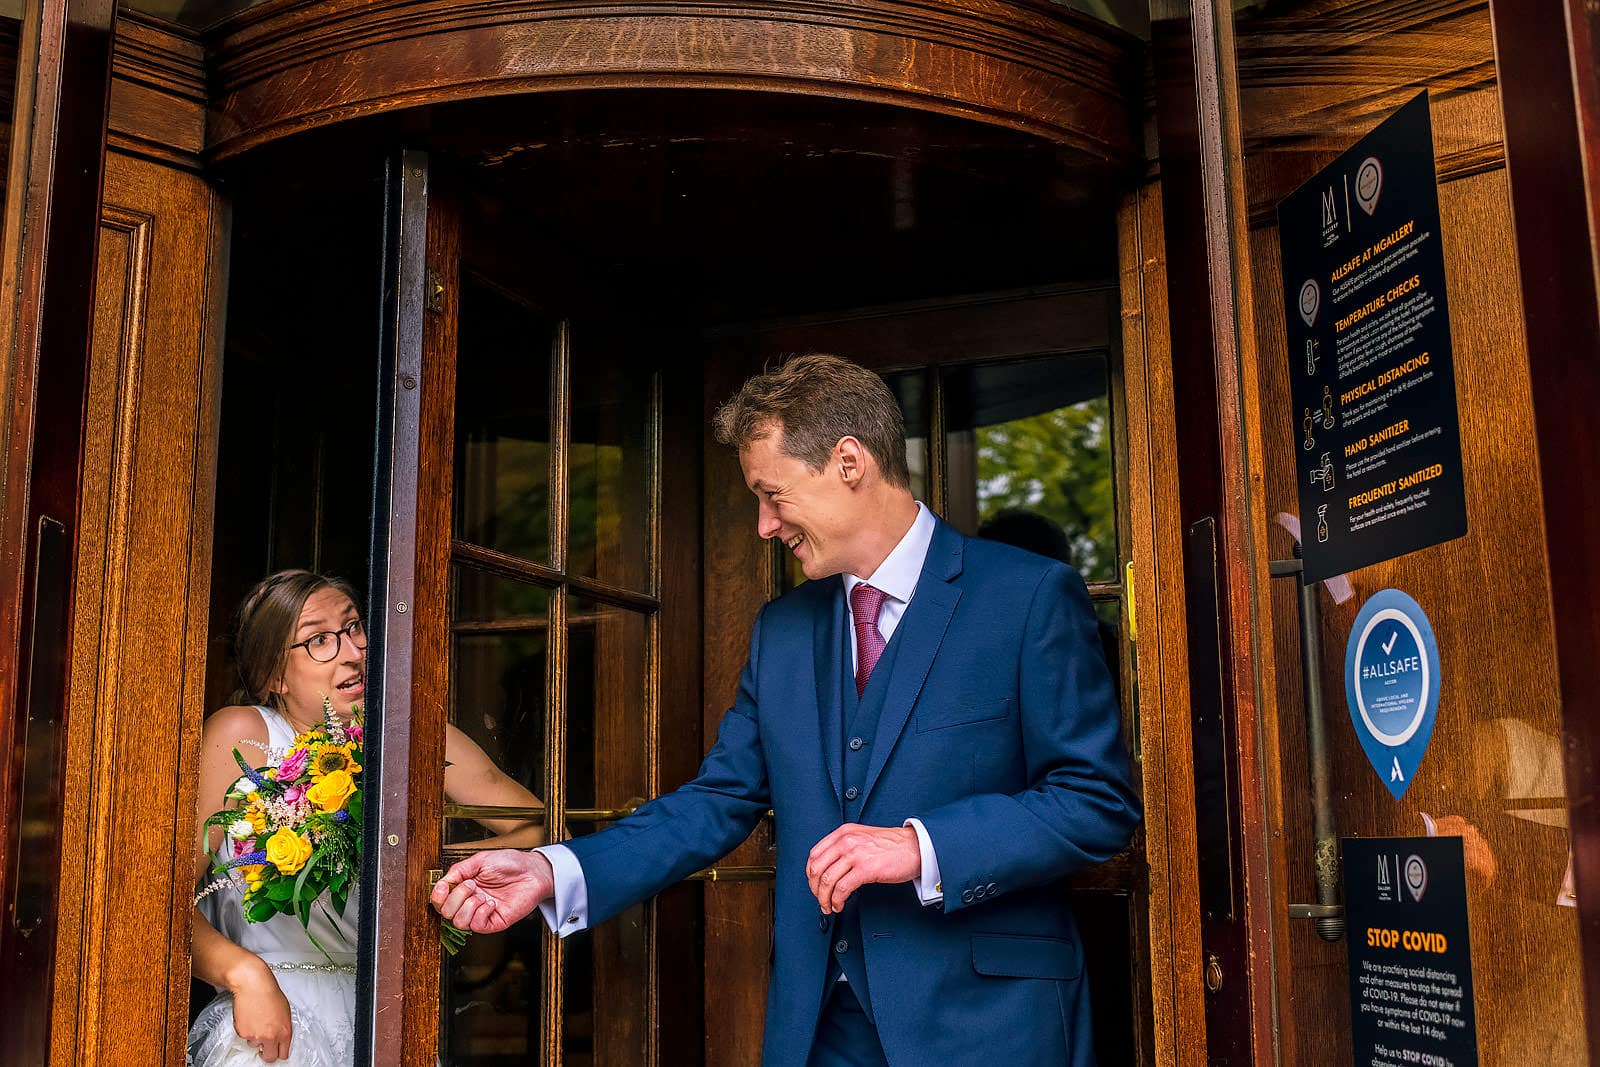 Groom forgets to let his wife through the door